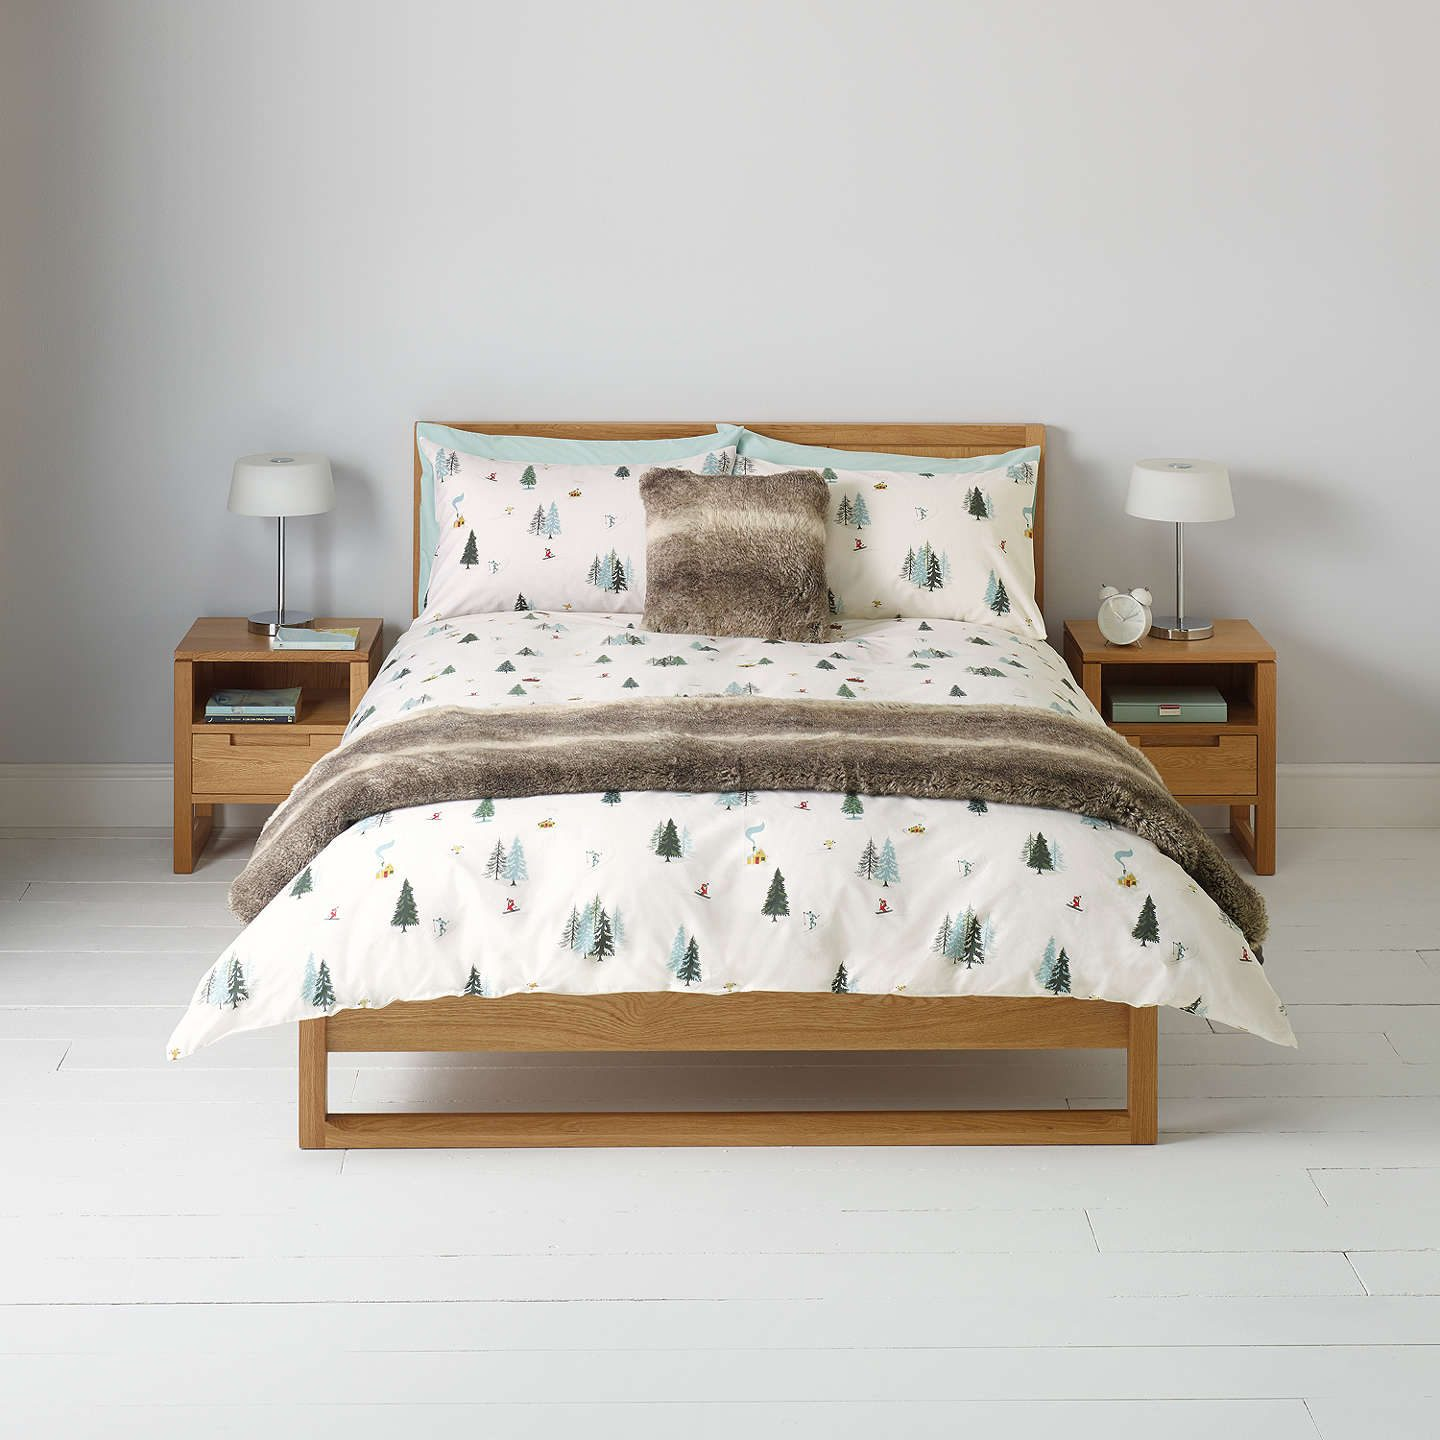 Best Christmas bedding - ski scene from John Lewis